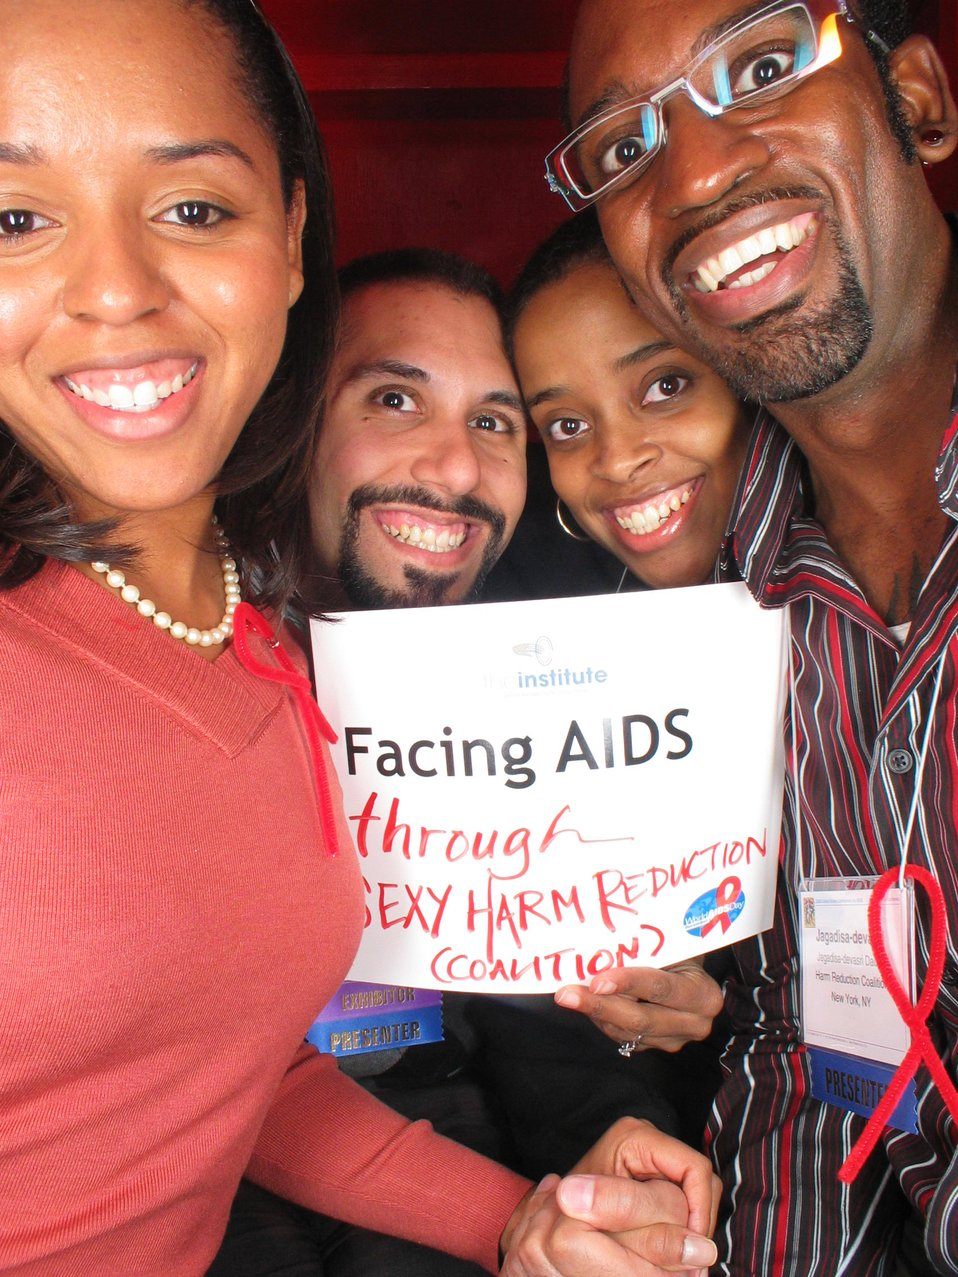 Facing AIDS through sexy harm reduction.